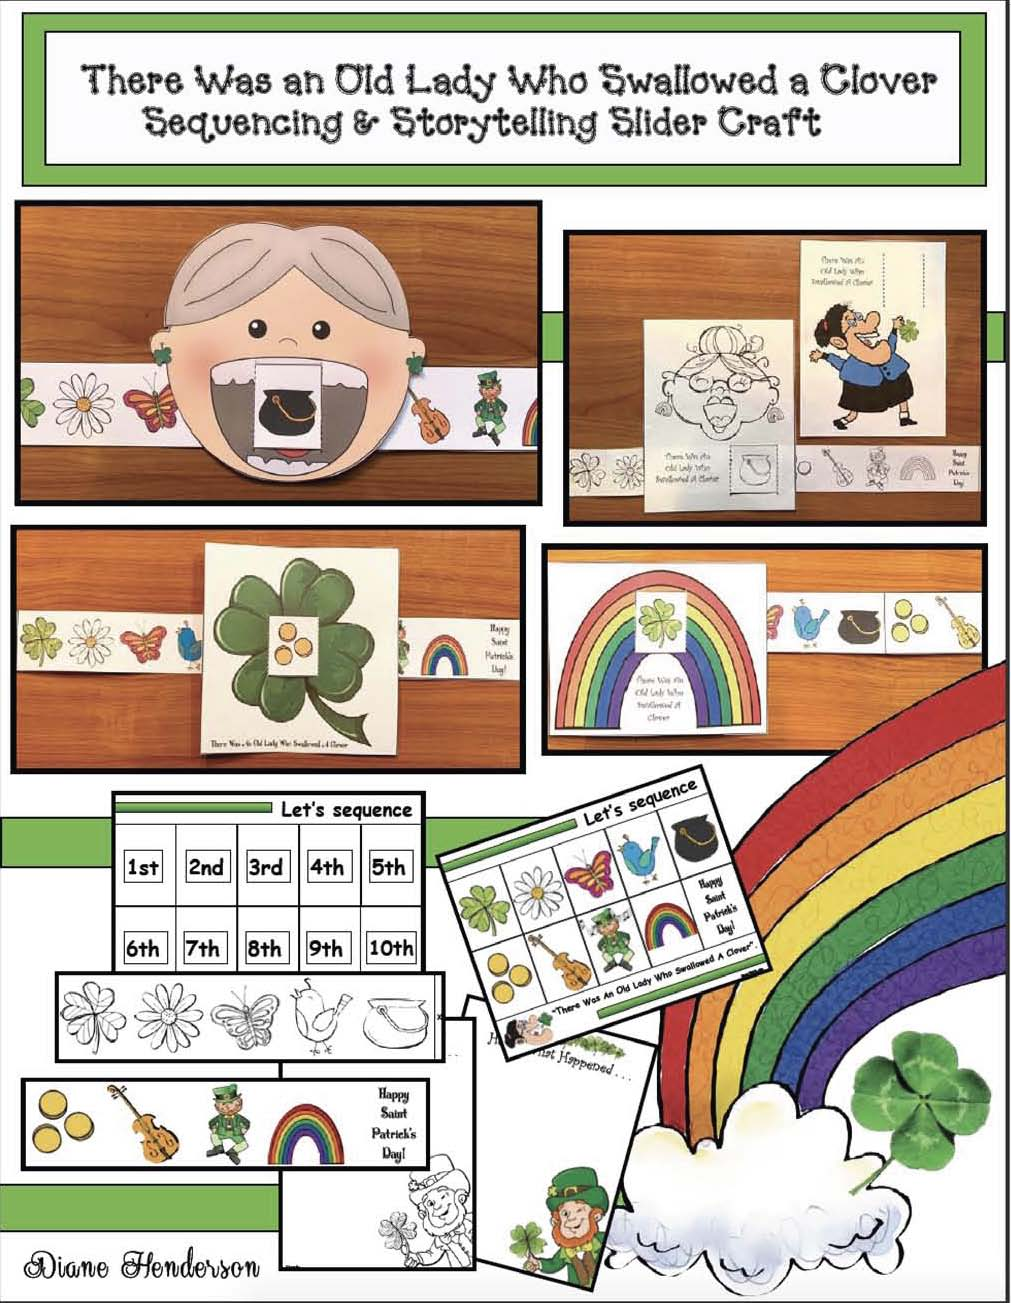 There was an old lady who swallowed a clover activities, retelling & sequencing a story activities, St. Patrick's Day books, St. Patrick's Day stories, St. Patrick's Day crafts